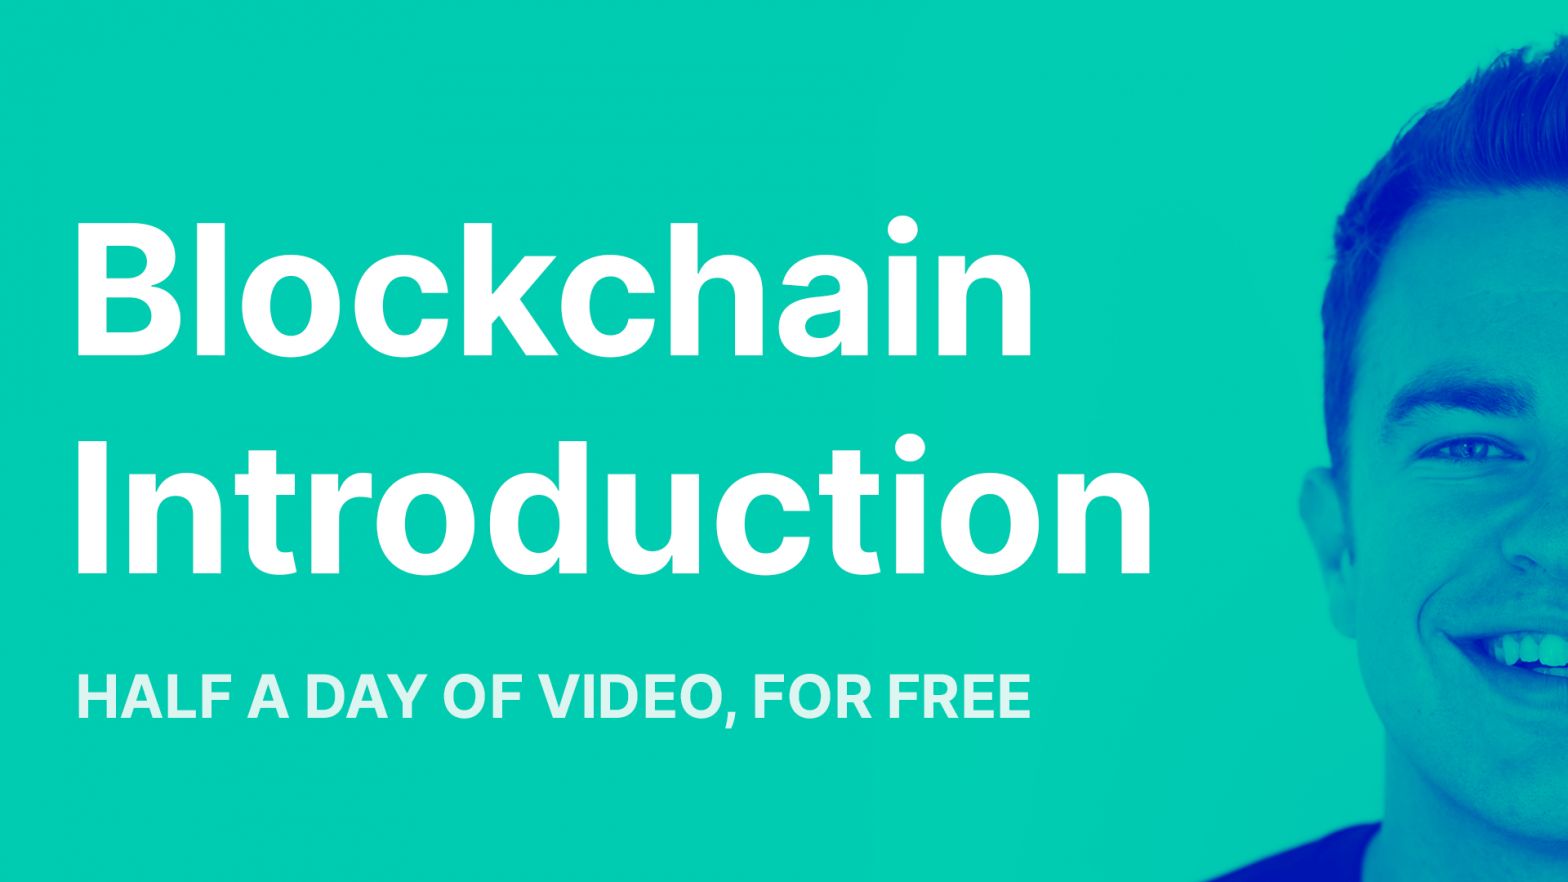 Blockchain Introduction Free Videos